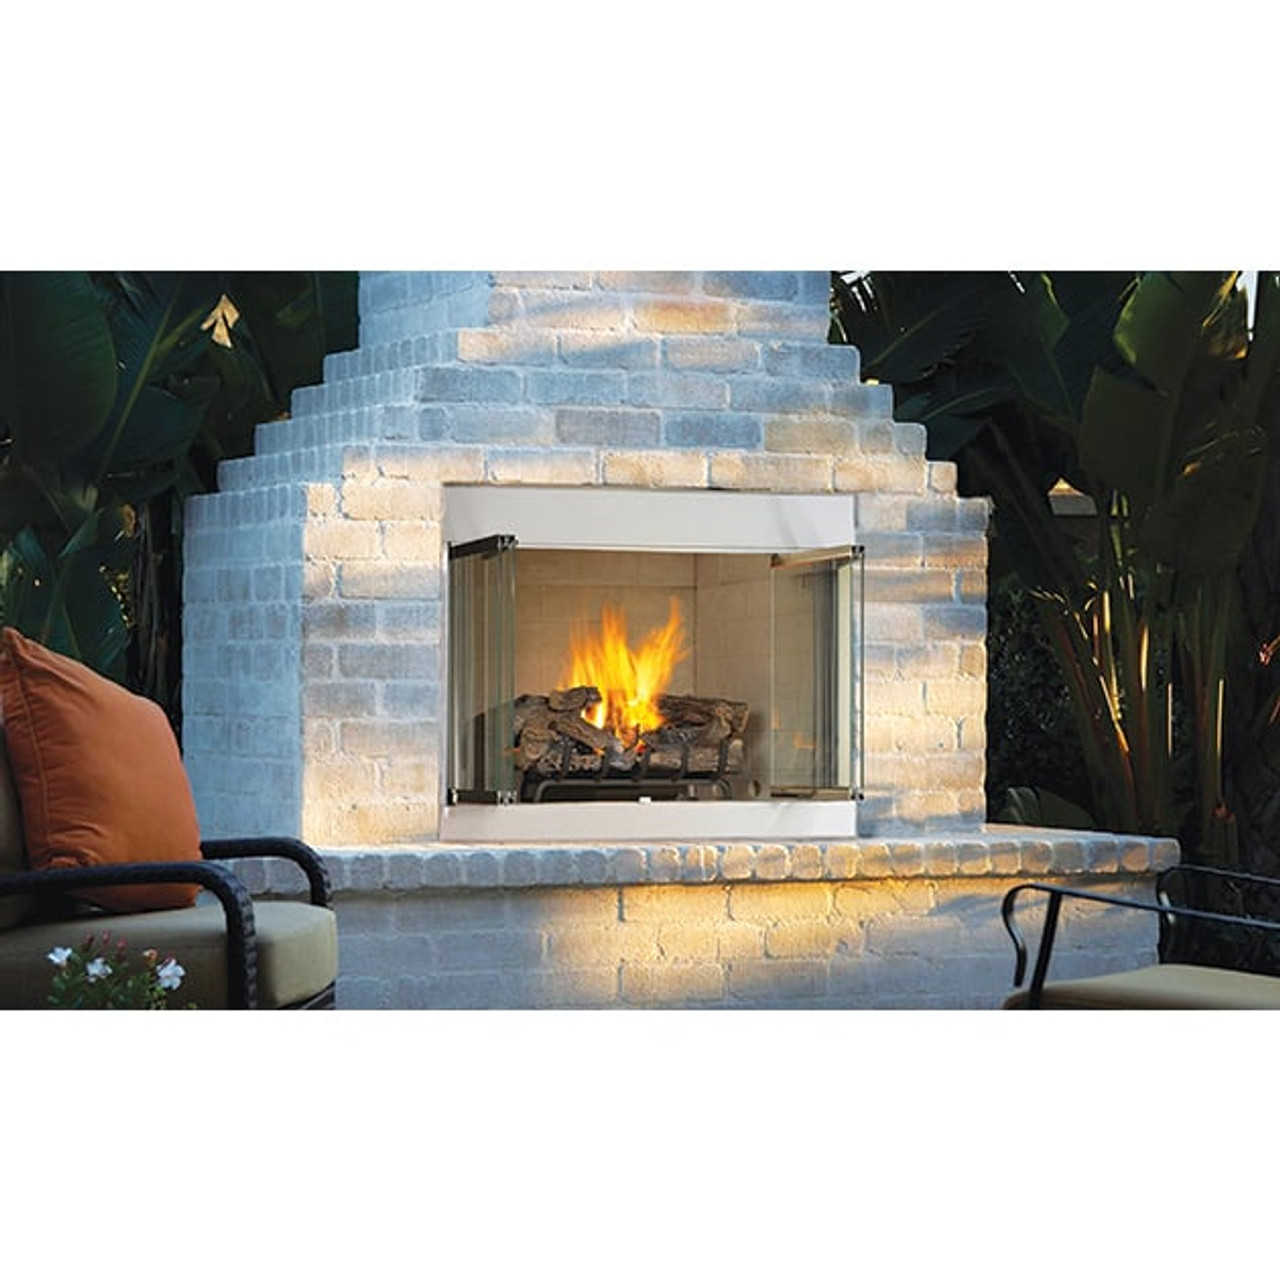 42 Odyssey Outdoor Vent Free Gas Fireplace Astria Ams Fireplace